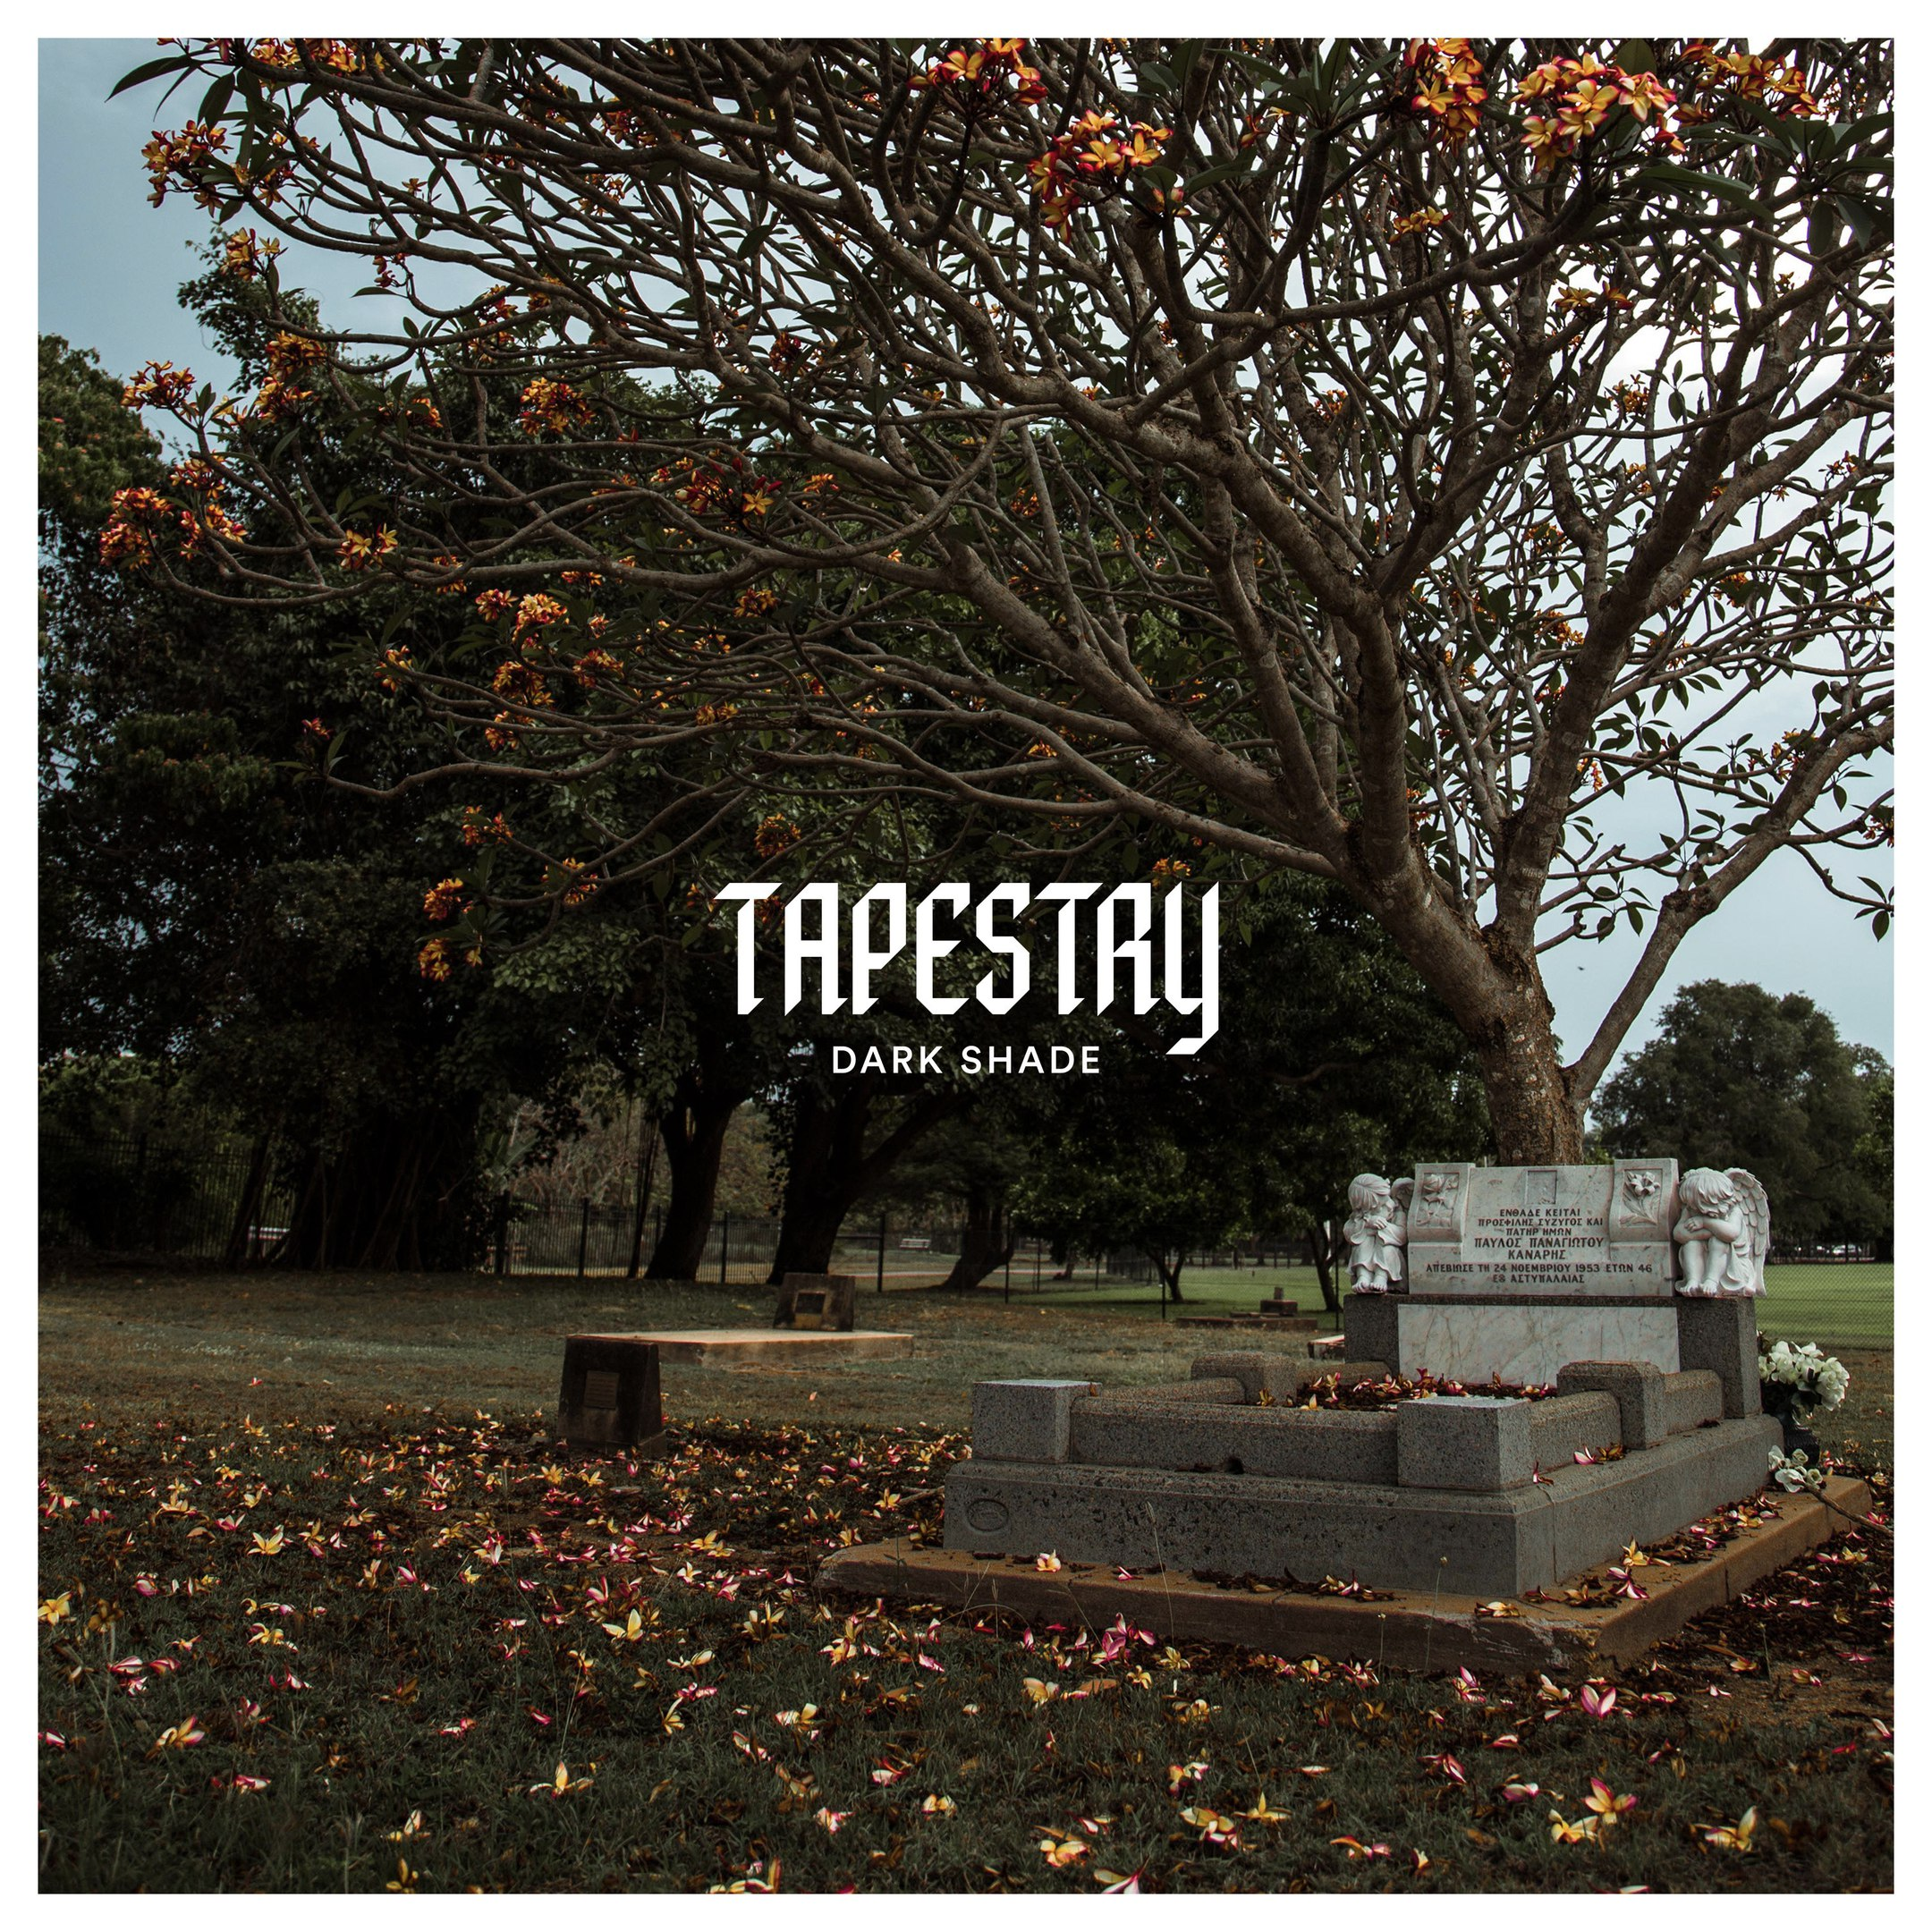 Tapestry - Dark Shade [single] (2017)